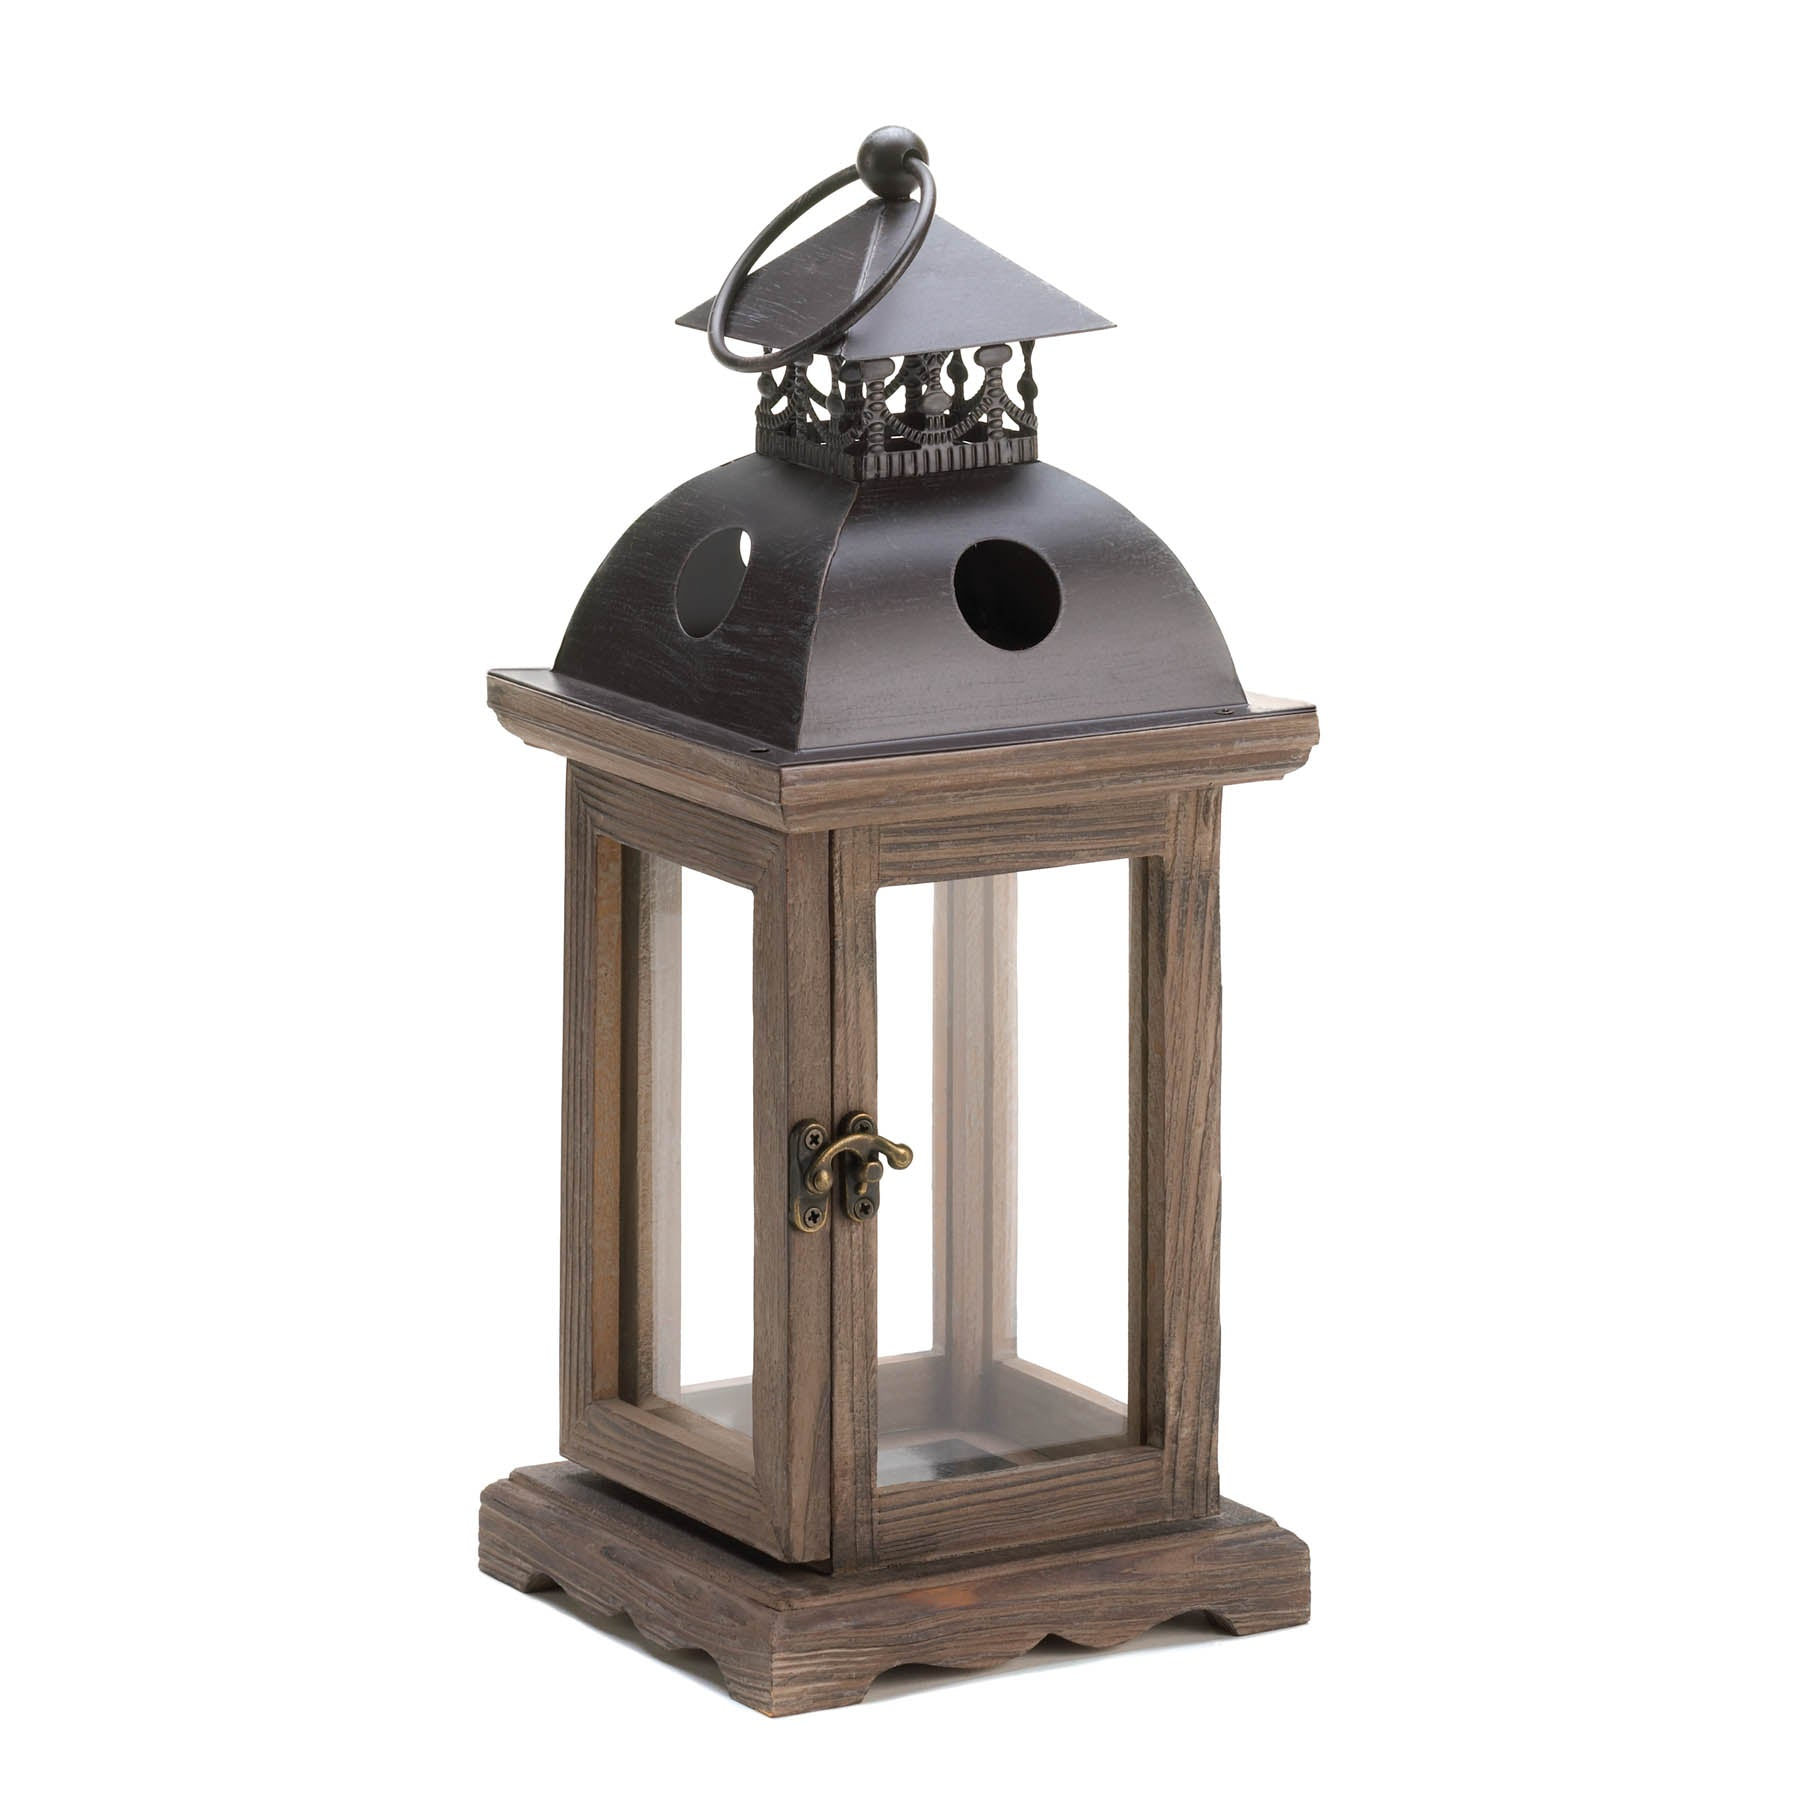 Gallery of Light Small Monticello Candle Lantern - 10015421